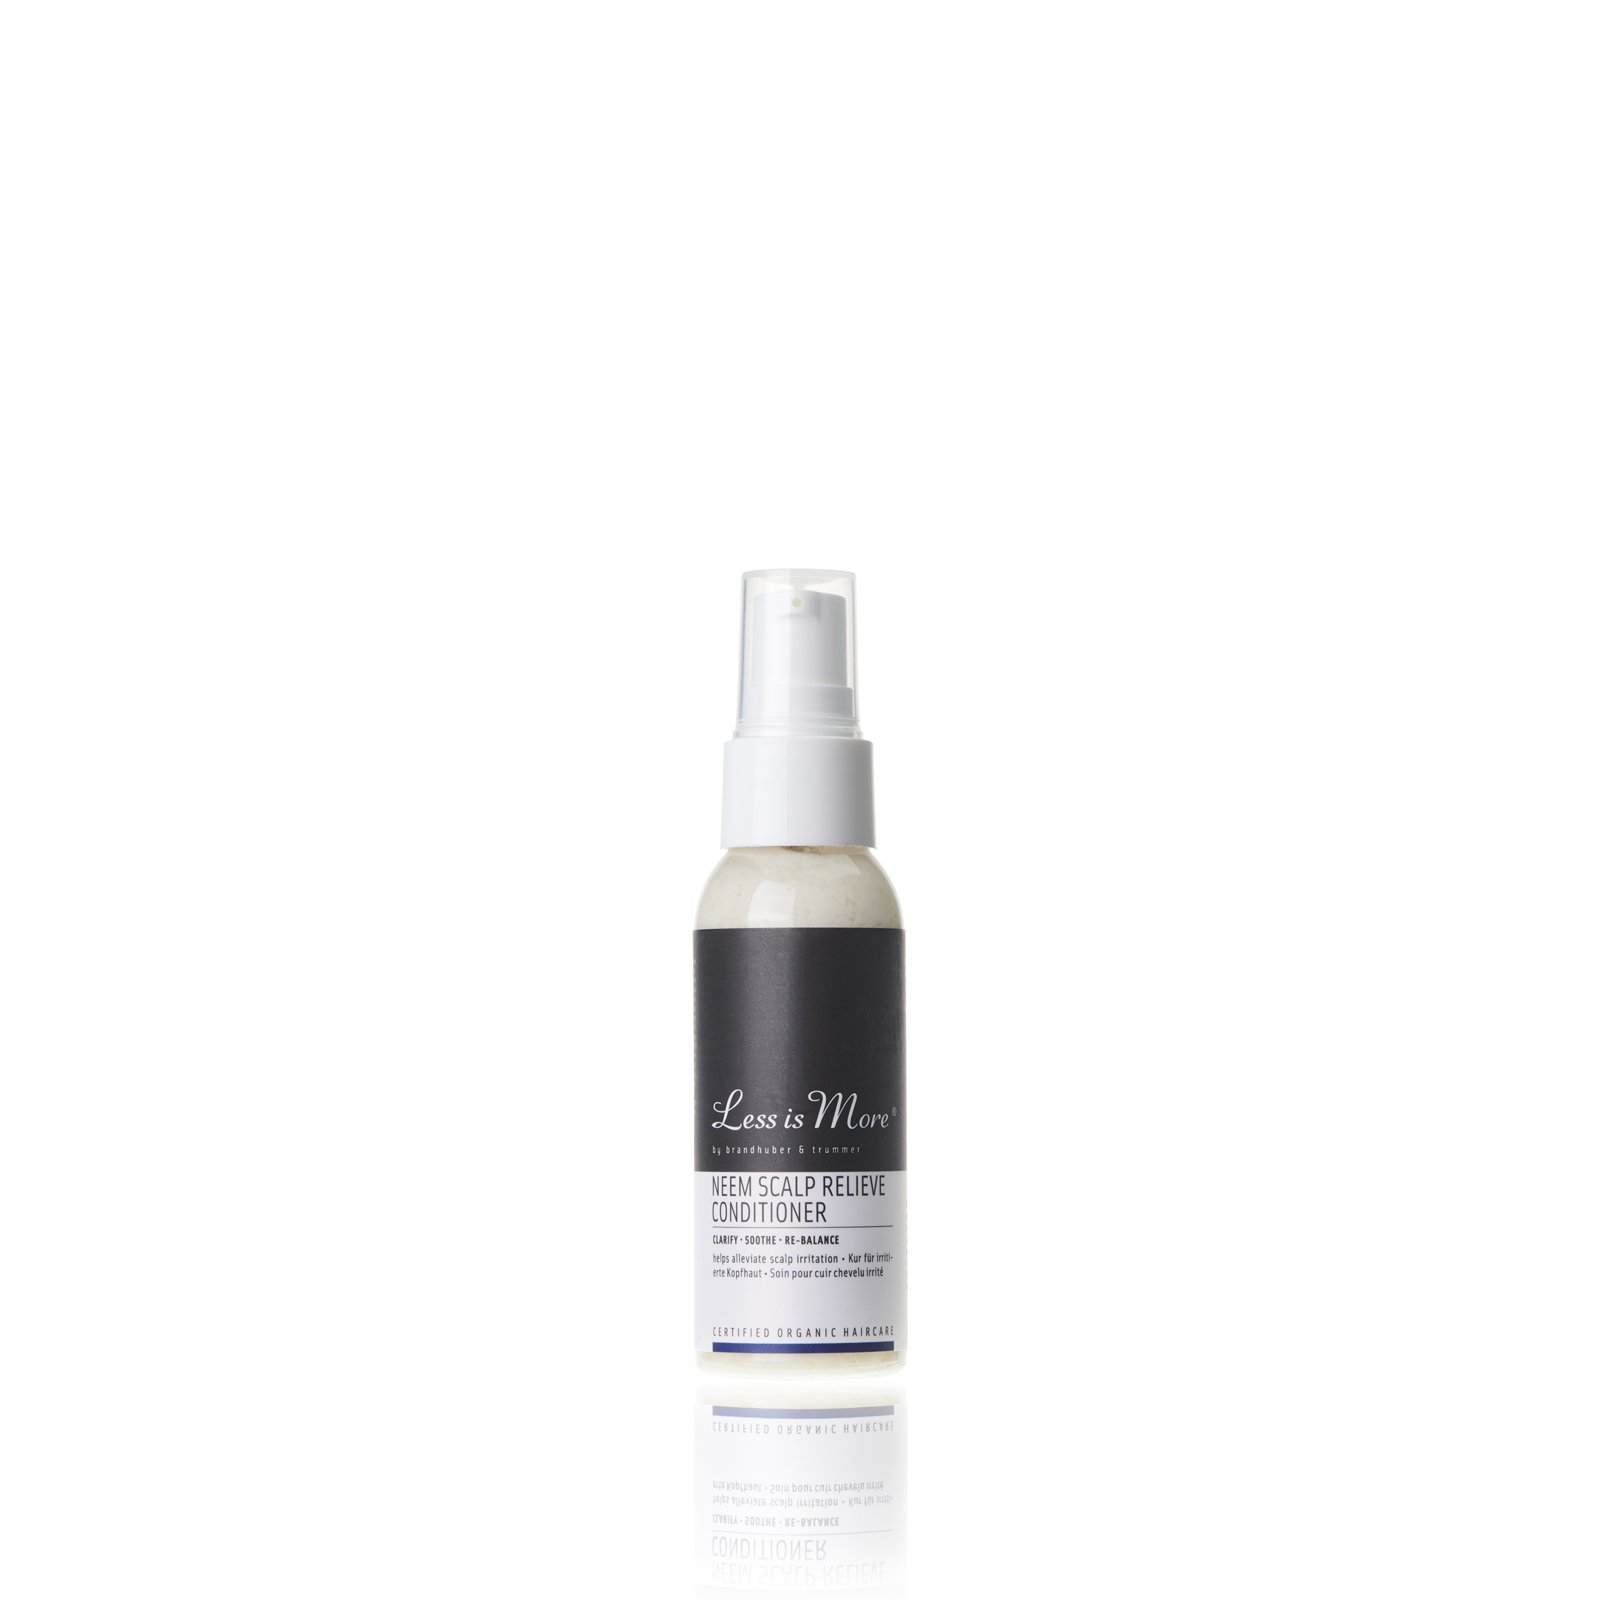 Neem Scalp Relieve Conditioner from Less Is More